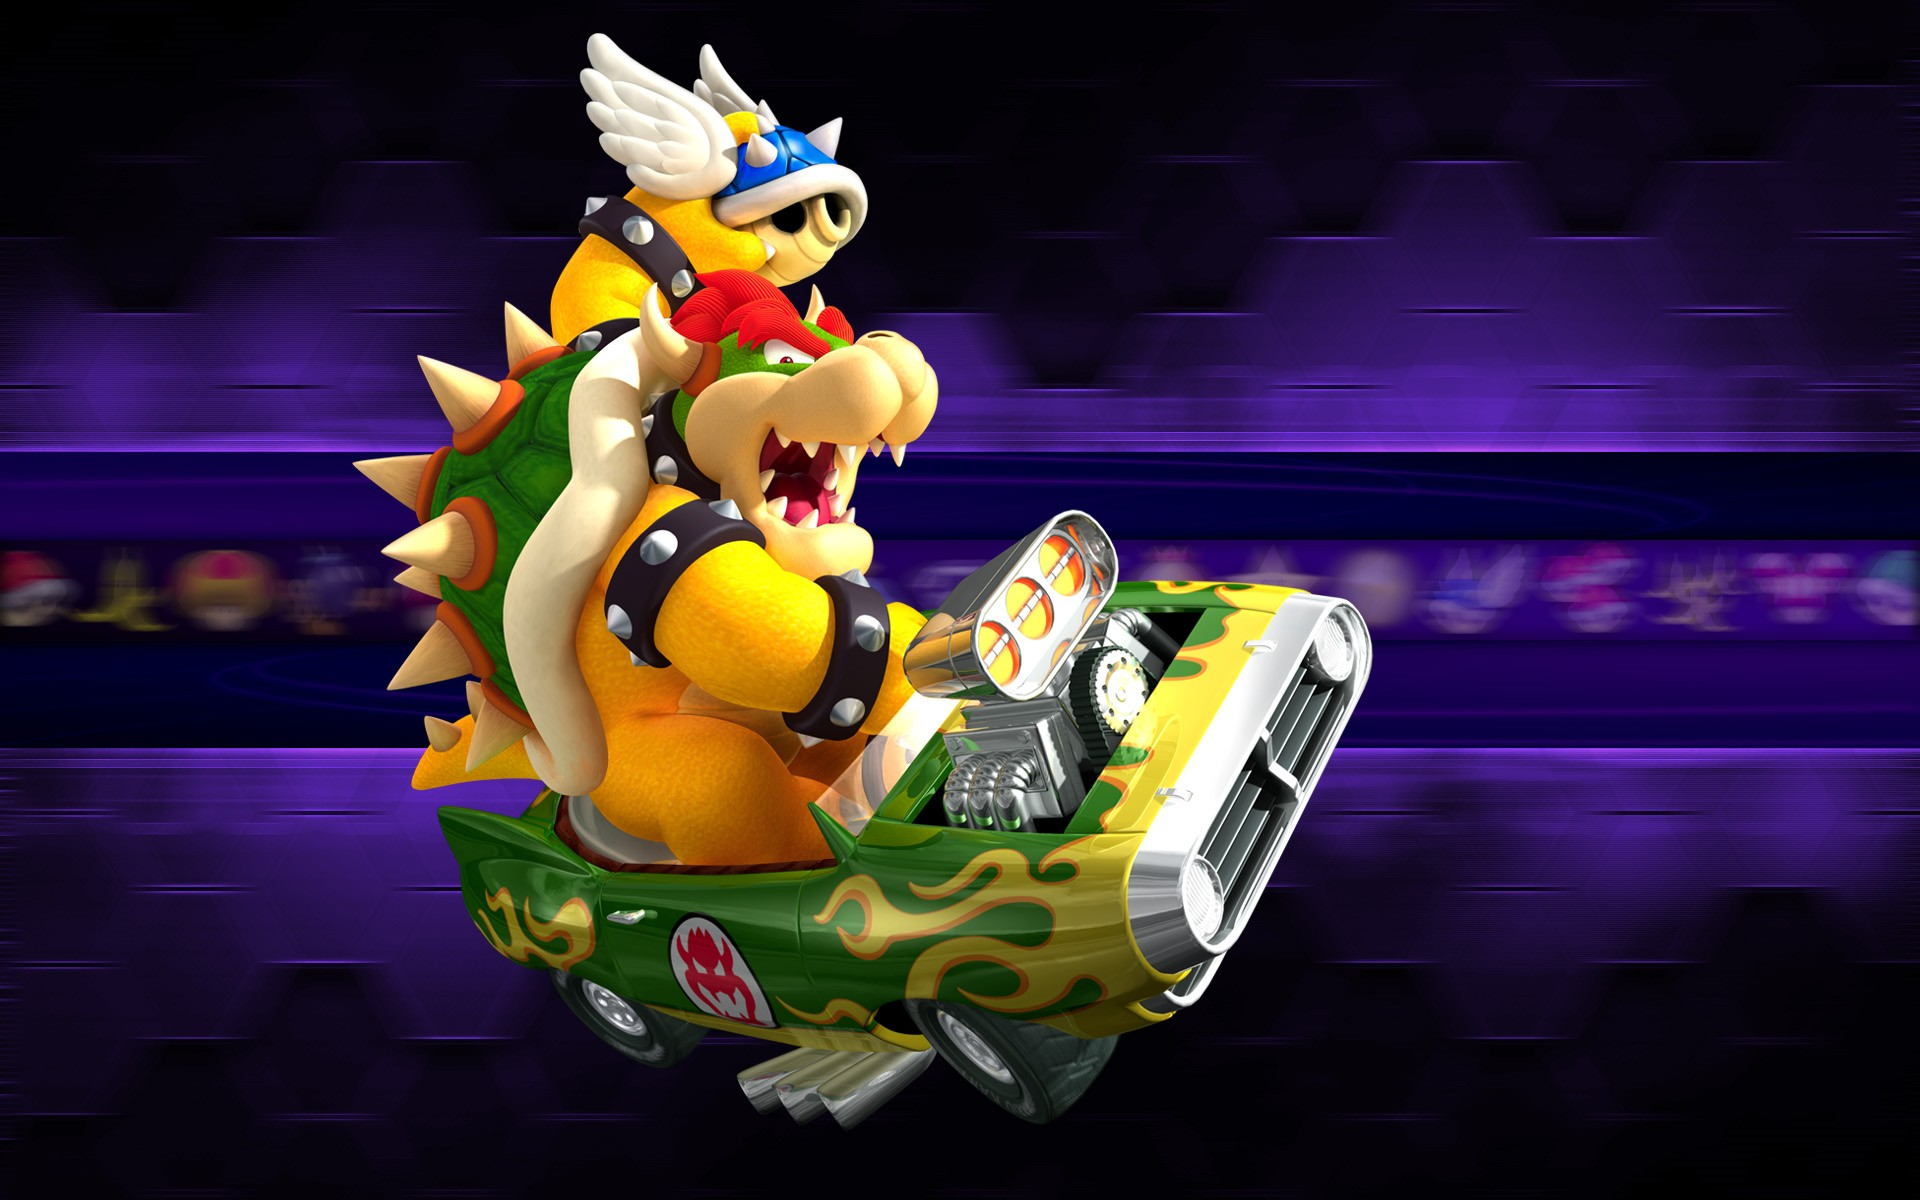 Mario Kart Iphone Wallpaper Bowser Wallpapers High Quality Download Free